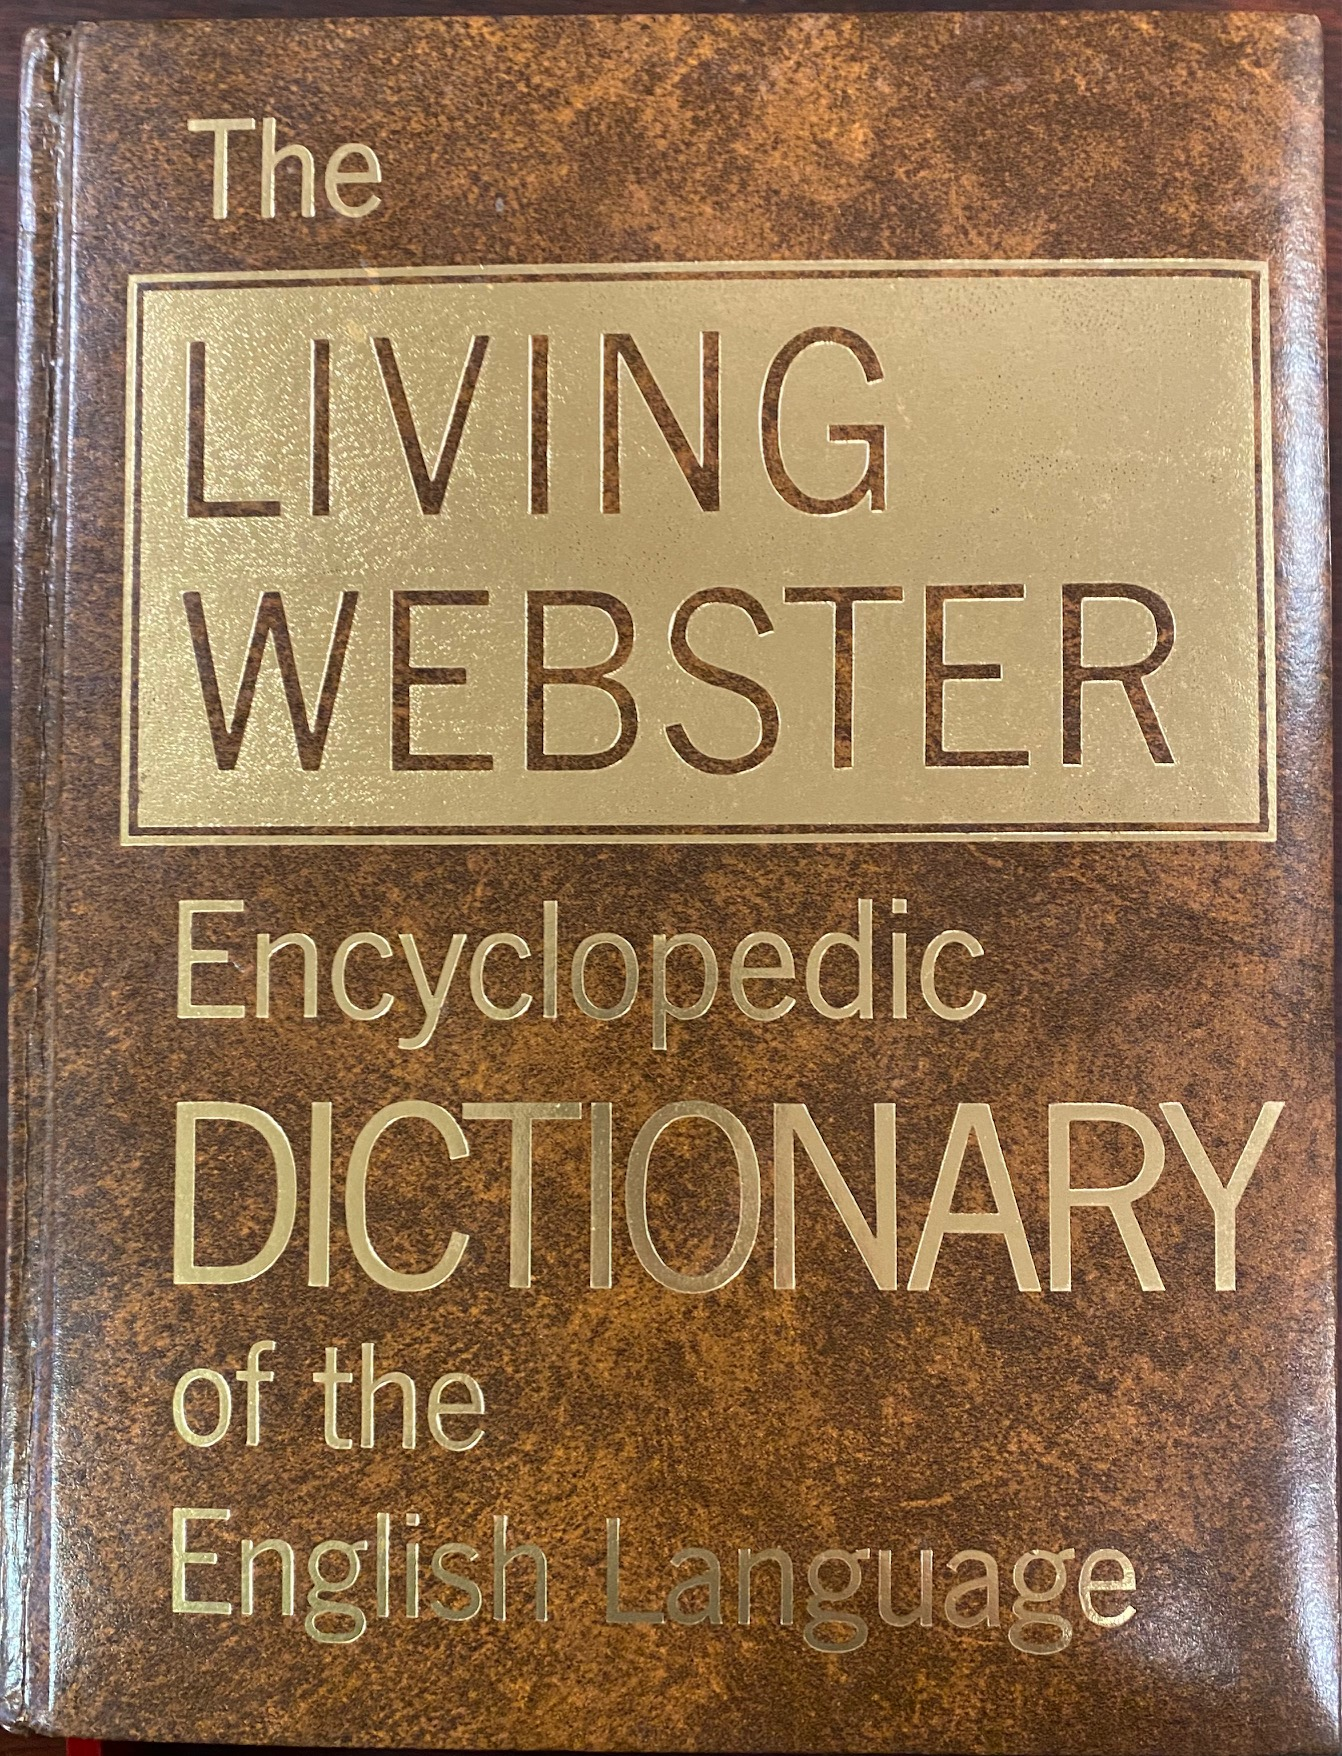 Image for The Living Webster Encyclopedic Dictionary of the English Language, with A Historical Sketch of the English Language by Mario Pei